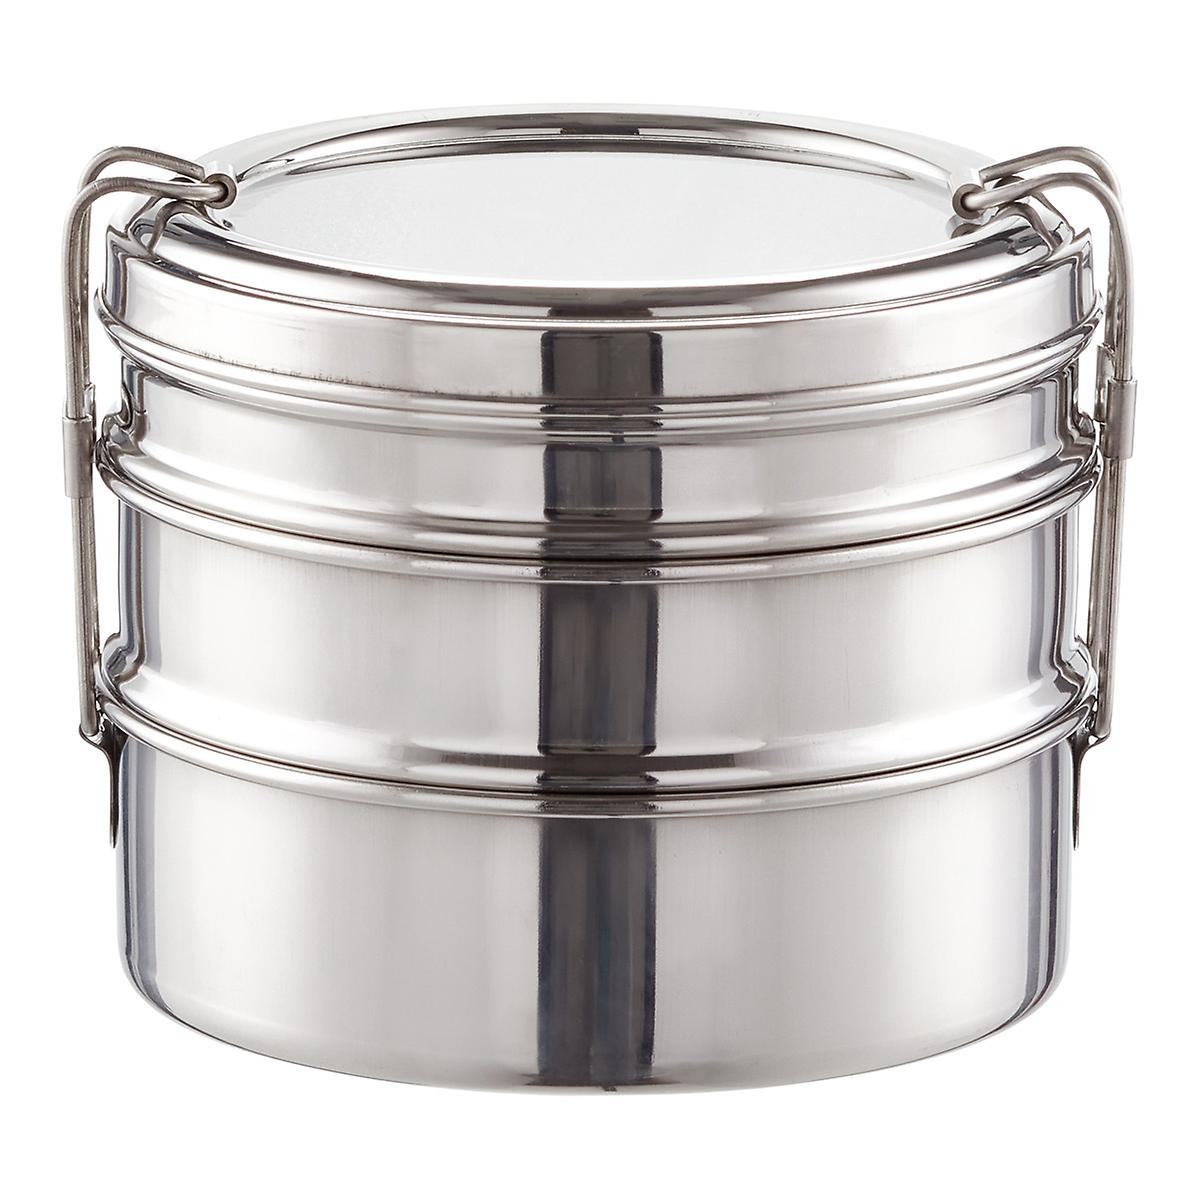 Ecolunchbox Stainless Steel Round 3 In 1 Bento Box The